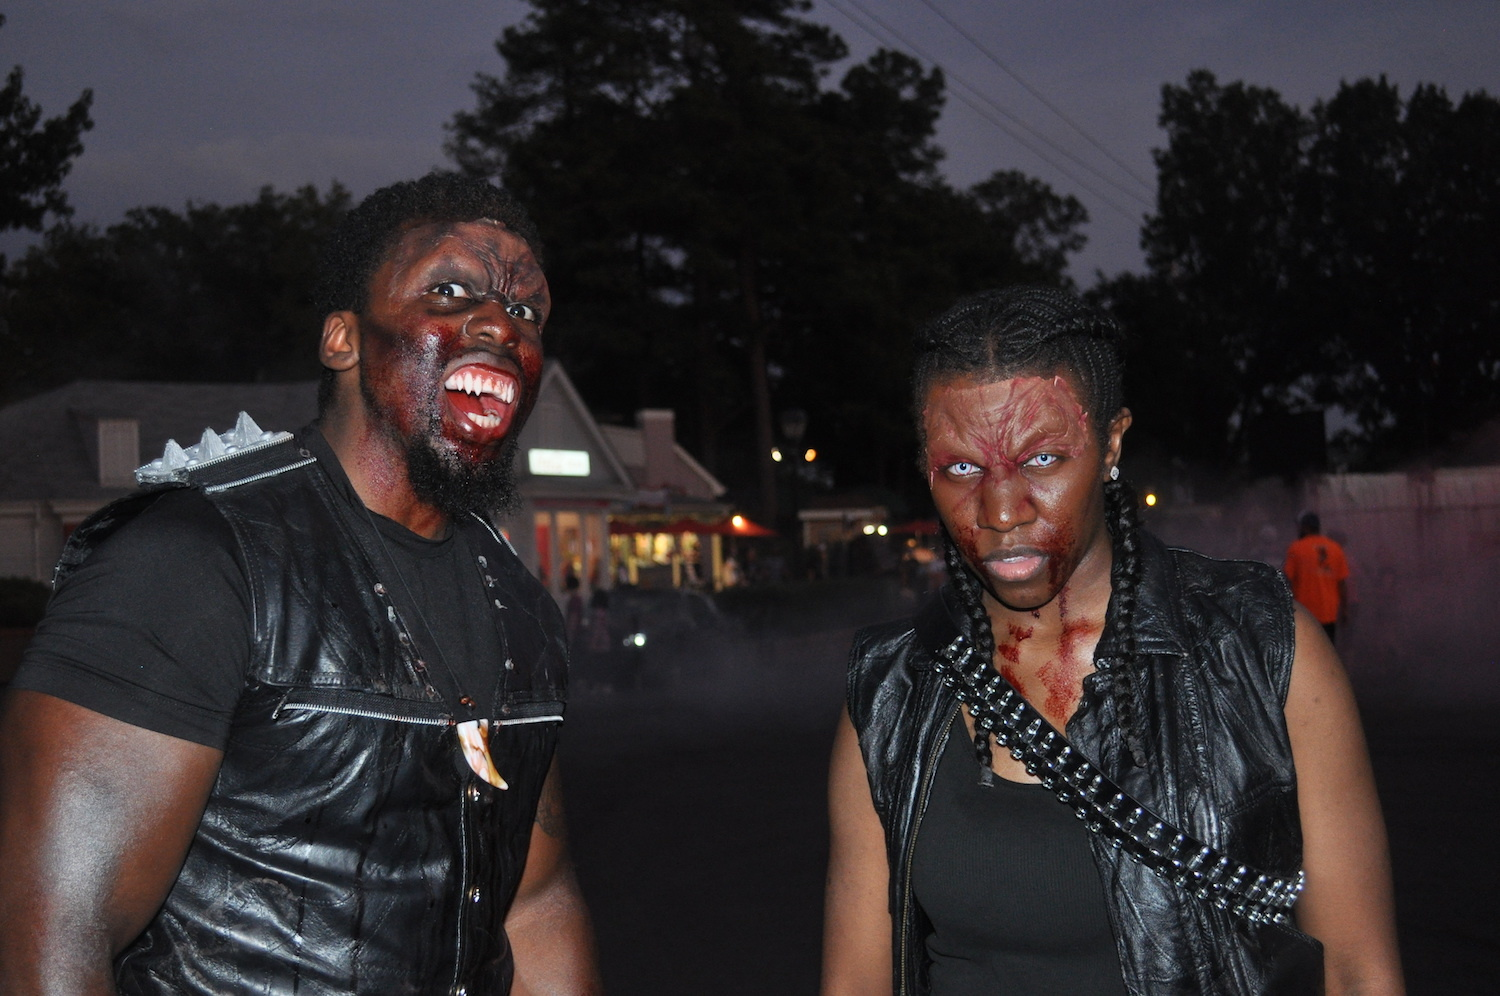 Two men wearing Halloween makeup to look like vampires.